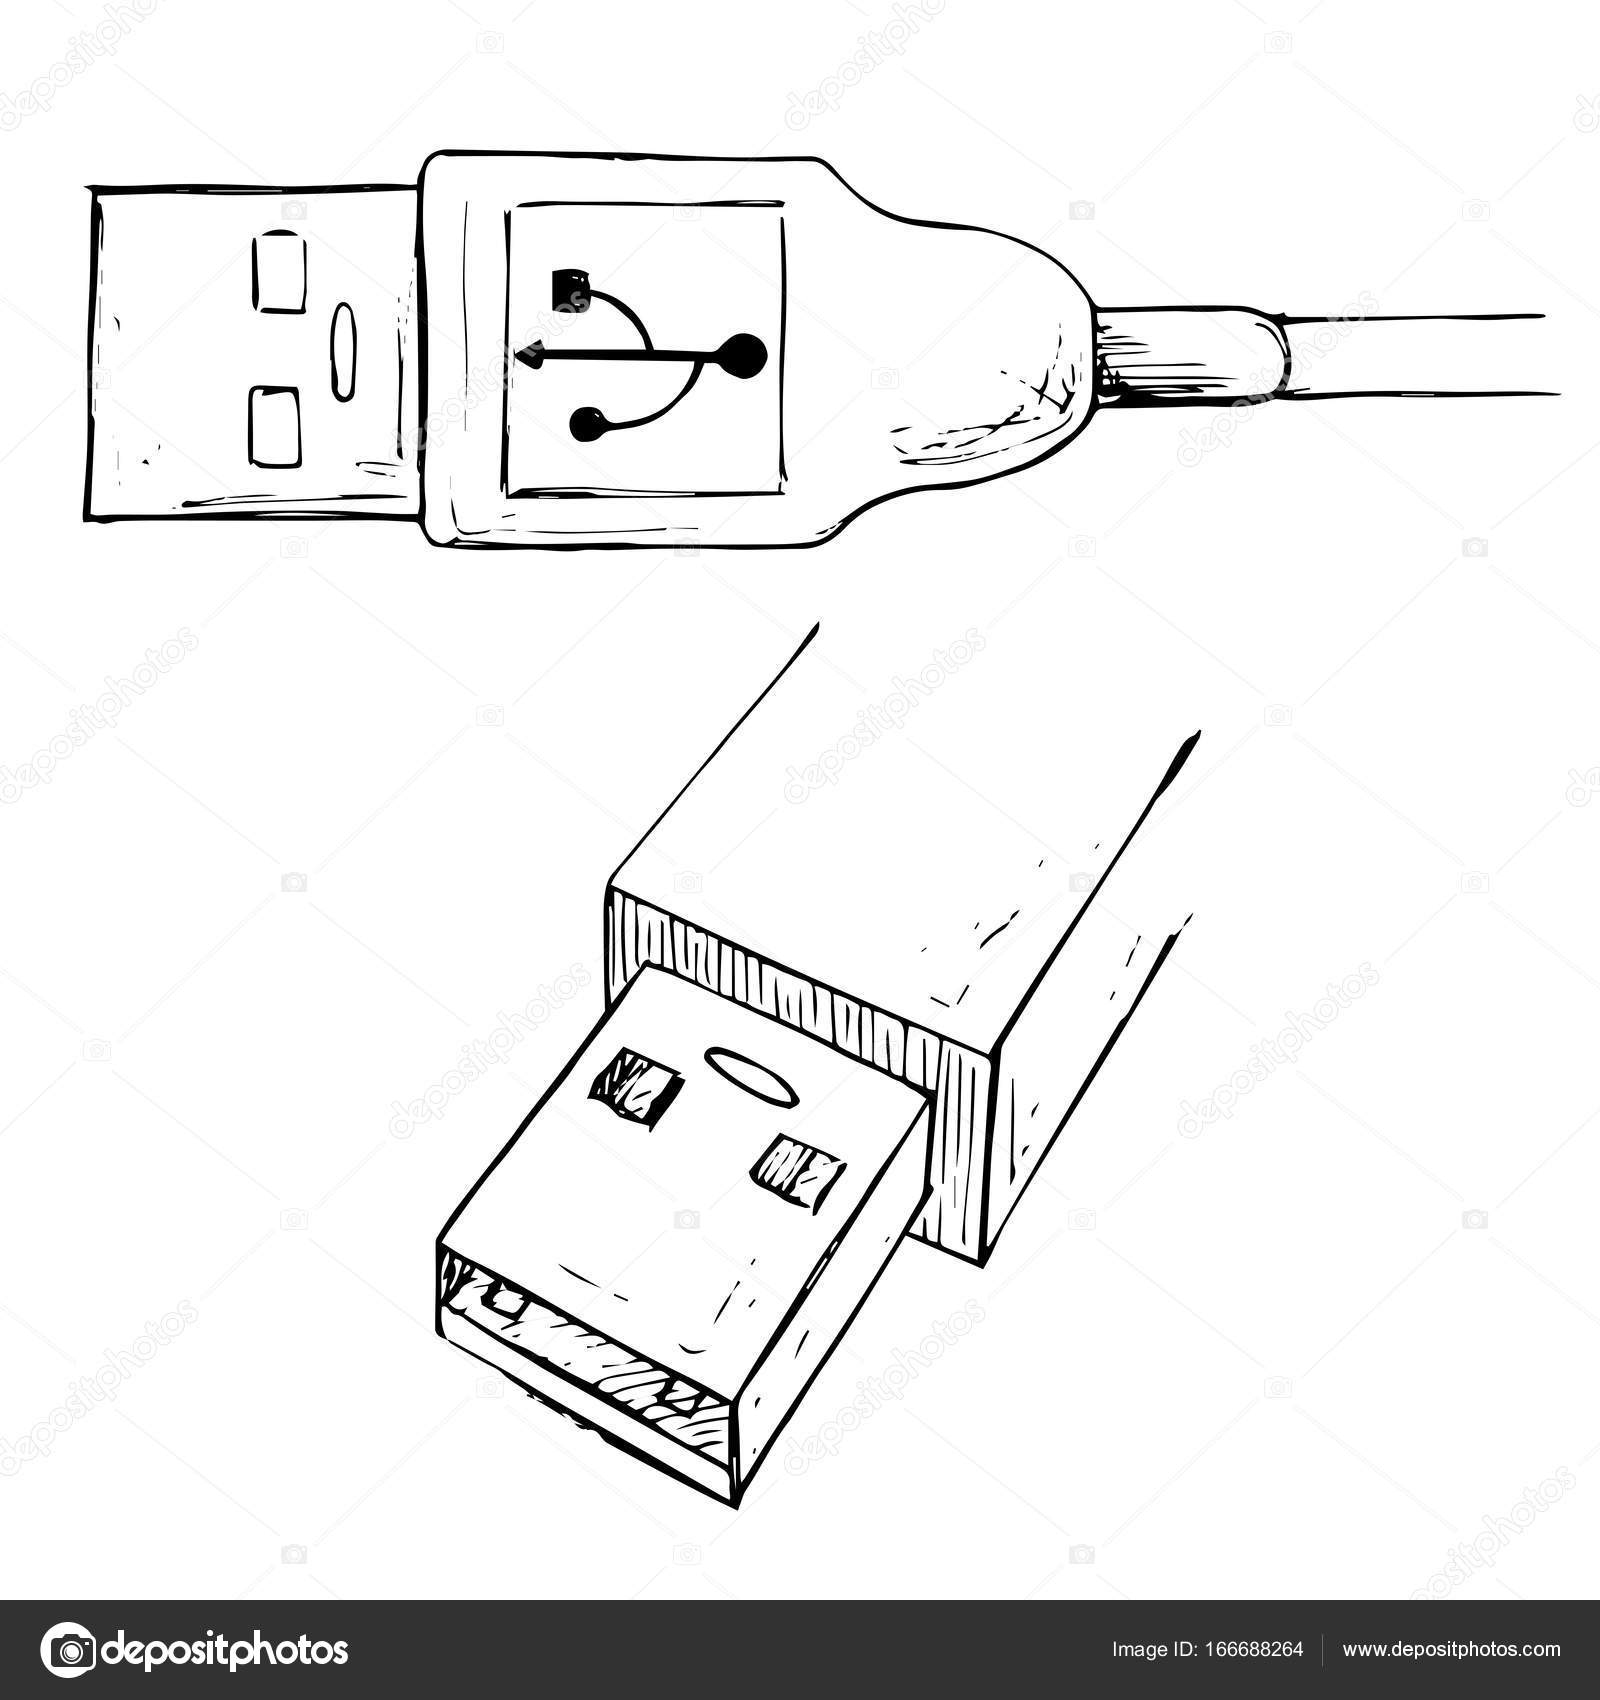 USB type A connector plug. USB cable vector illustration